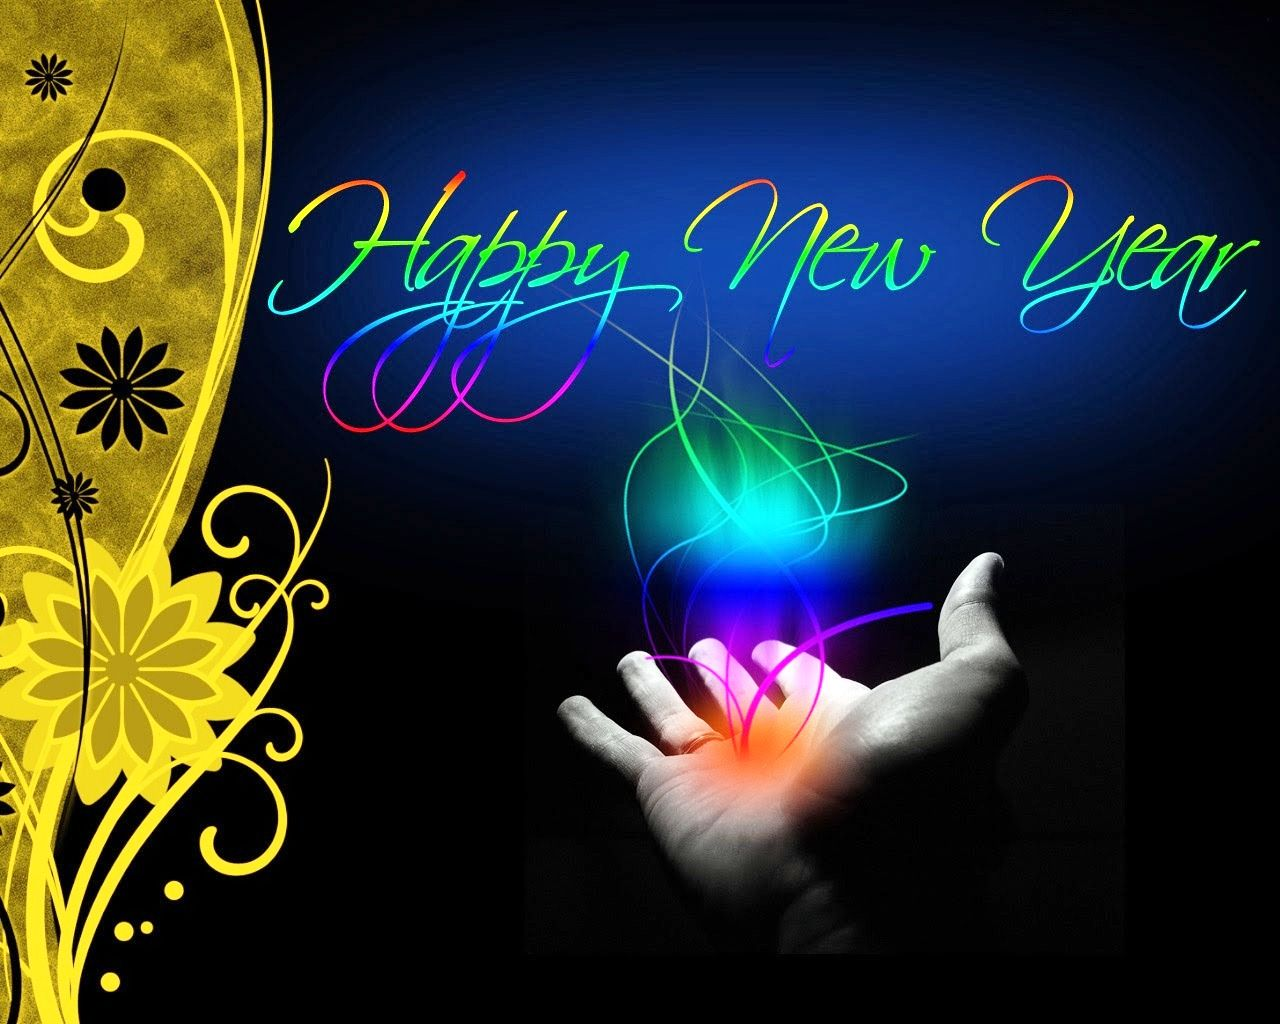 Happy New Year Wishes Card Happy New Year 2014 Pinterest